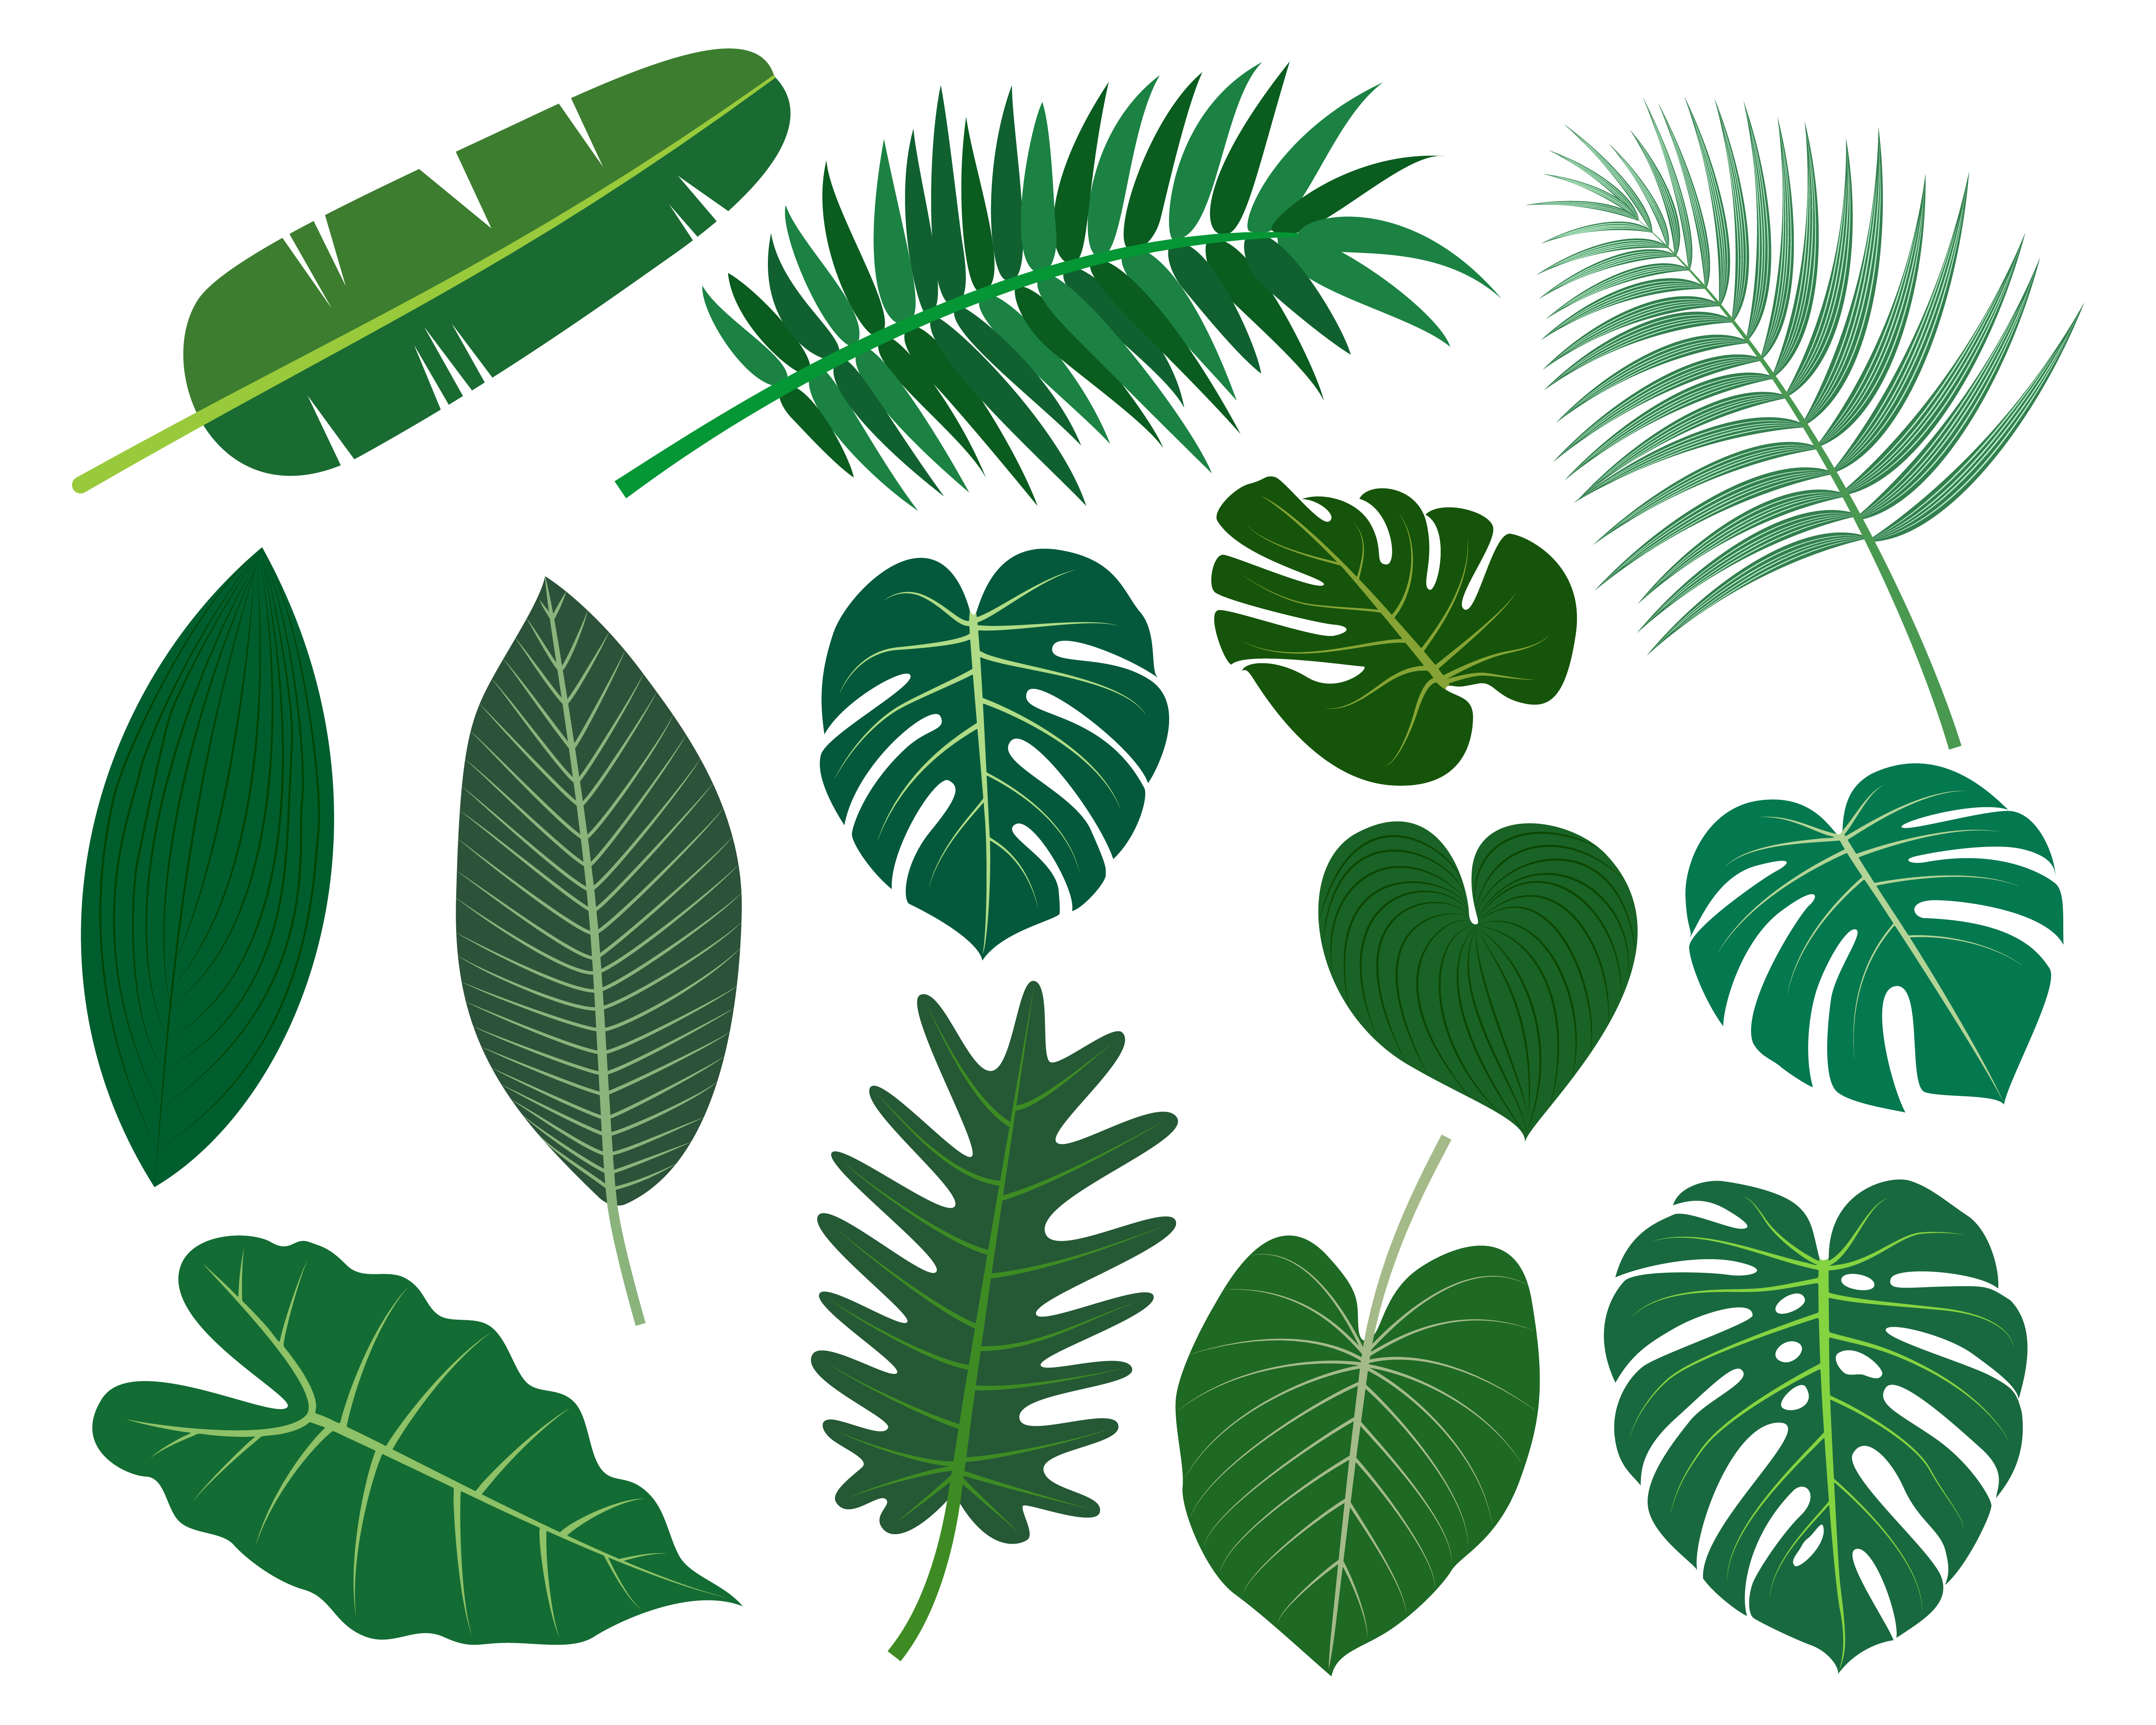 Collection Of Tropical Leaves Vector Set Isolated On White Background Vector Illustration Download Free Vectors Clipart Graphics Vector Art Choose from 600+ tropical leaves graphic resources and download in the form of png, eps, ai or vector hello summer holiday illustration with typography letter and tropical leaves on ocean blue. vecteezy